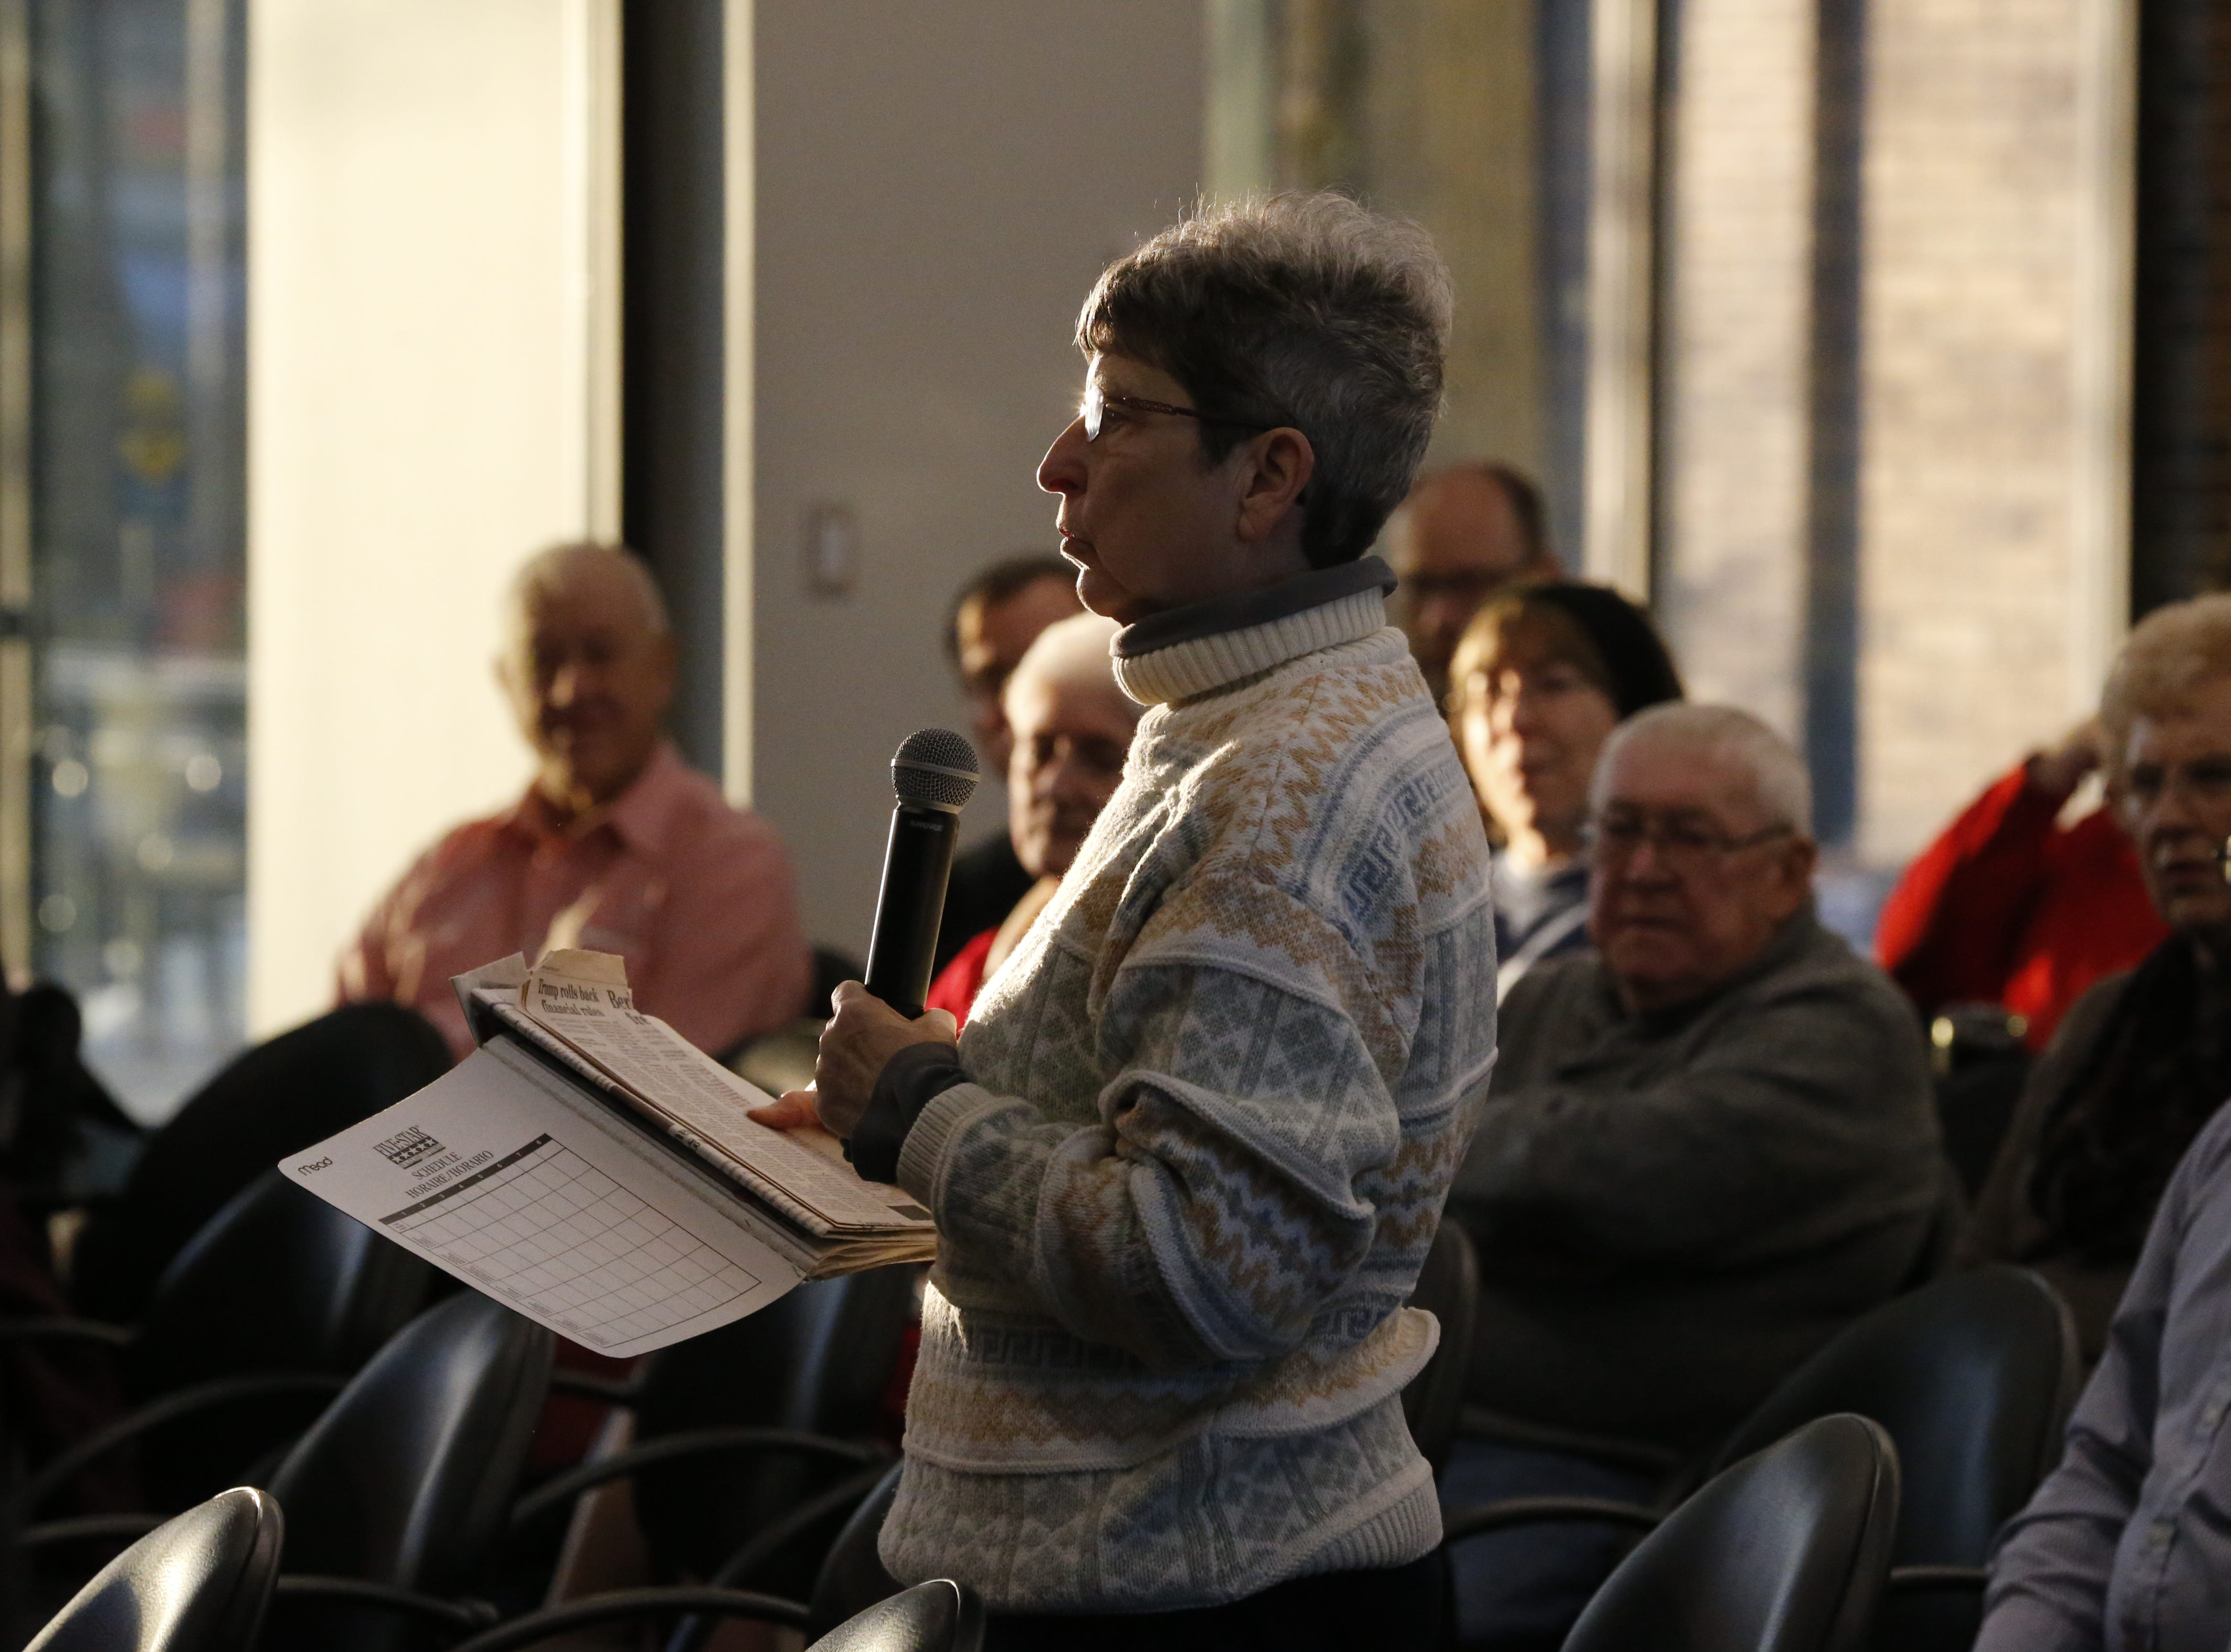 An audience member asks a question during Friday's Legislative Forum in the lobby of Whitewater Hall on the IU East campus in Richmond.